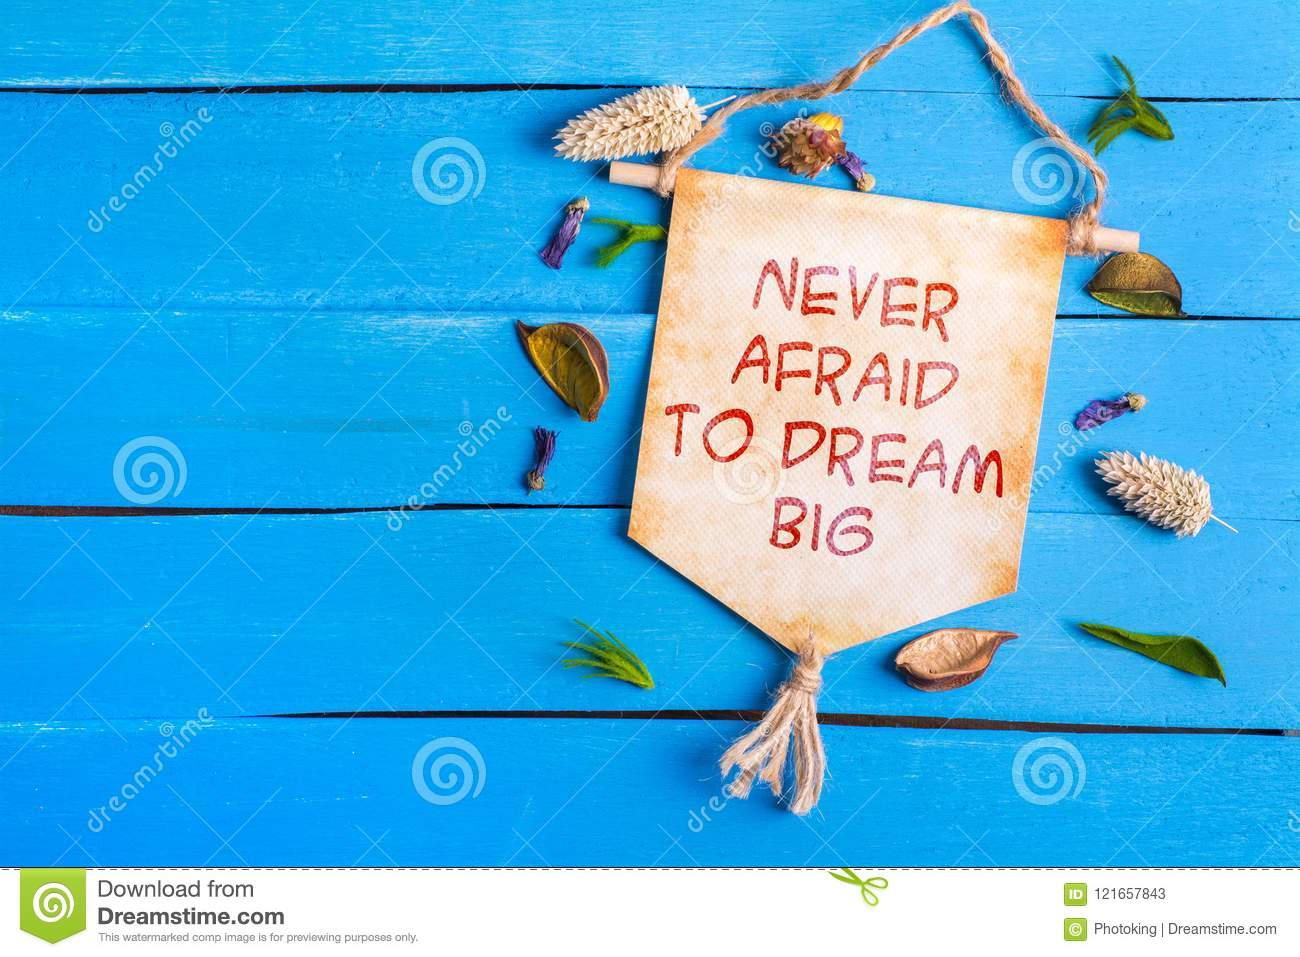 Never afraid to dream big text on Paper Scroll